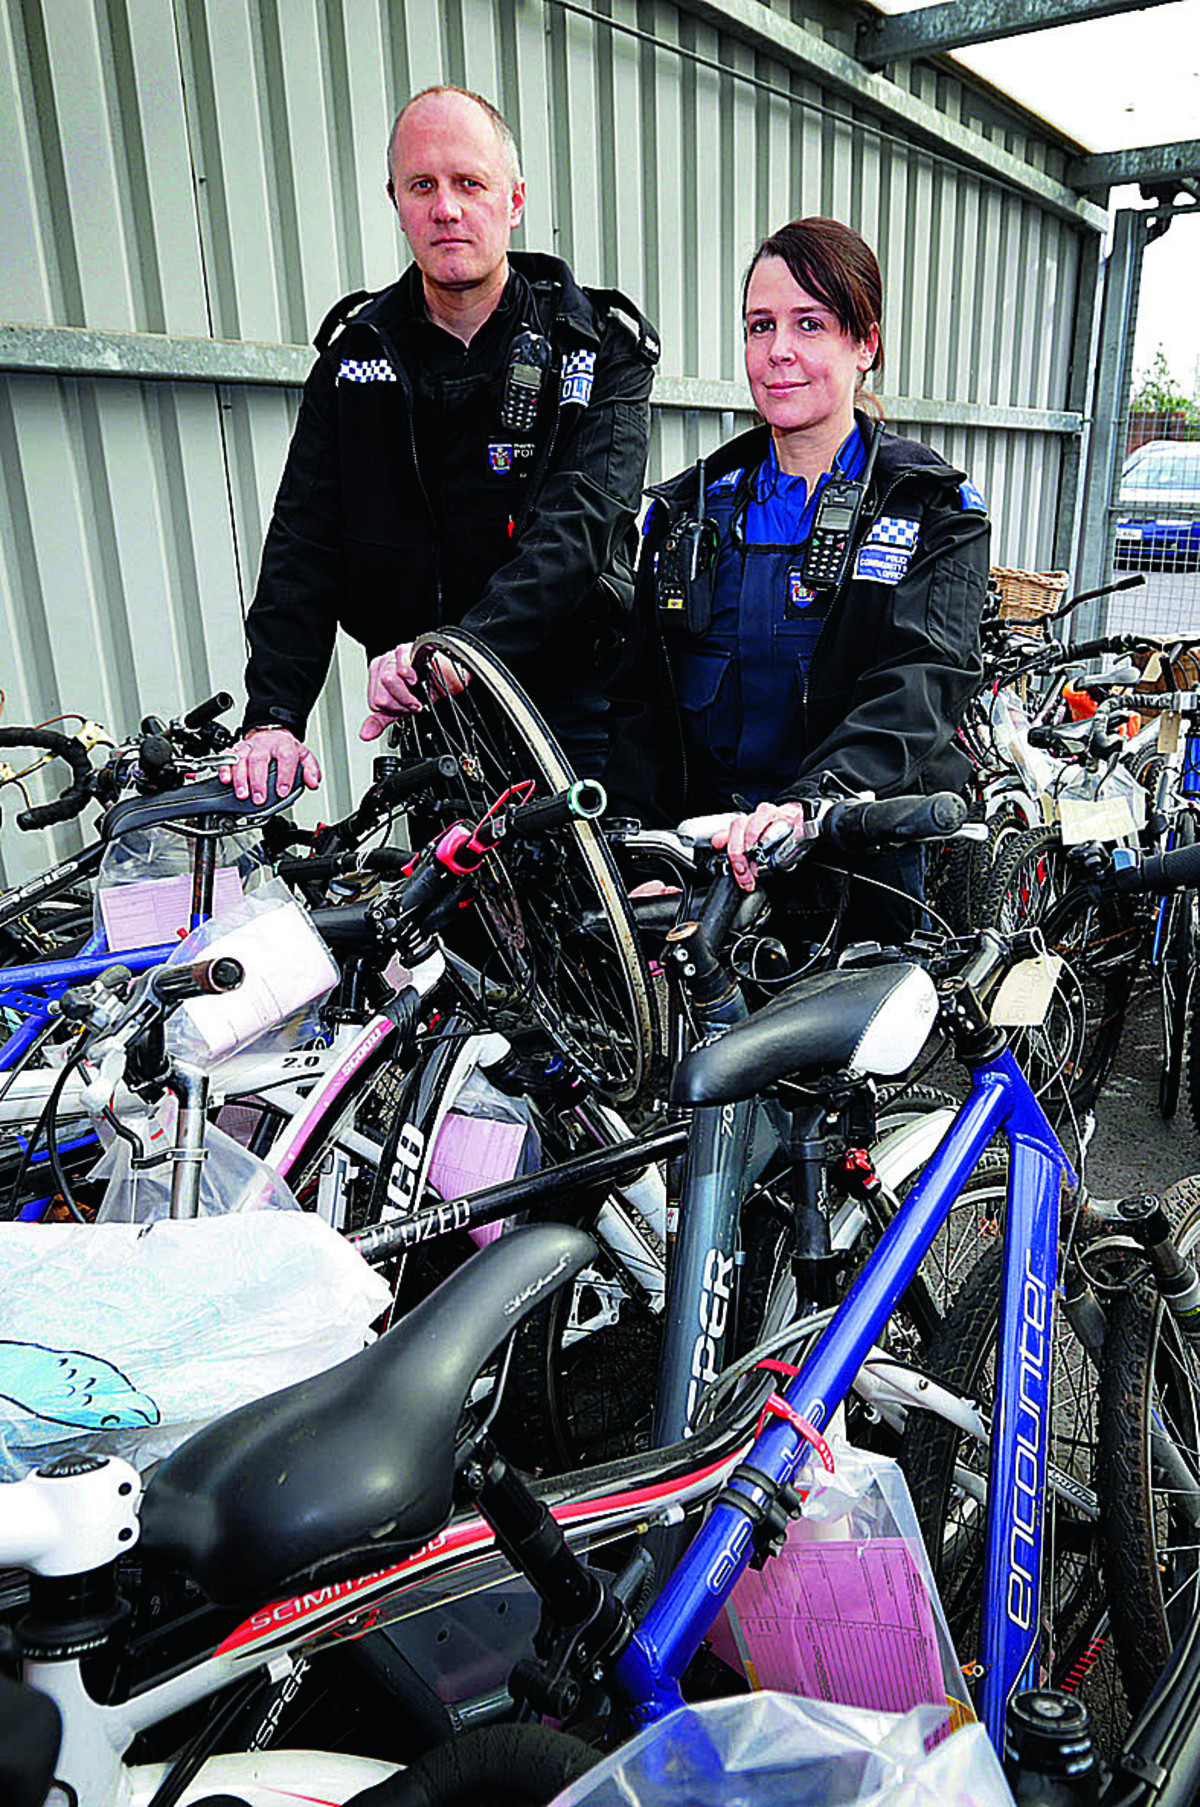 Pc Carl Bryant and PCSO Ali Blood with unclaimed bikes being held at Abingdon Police Station